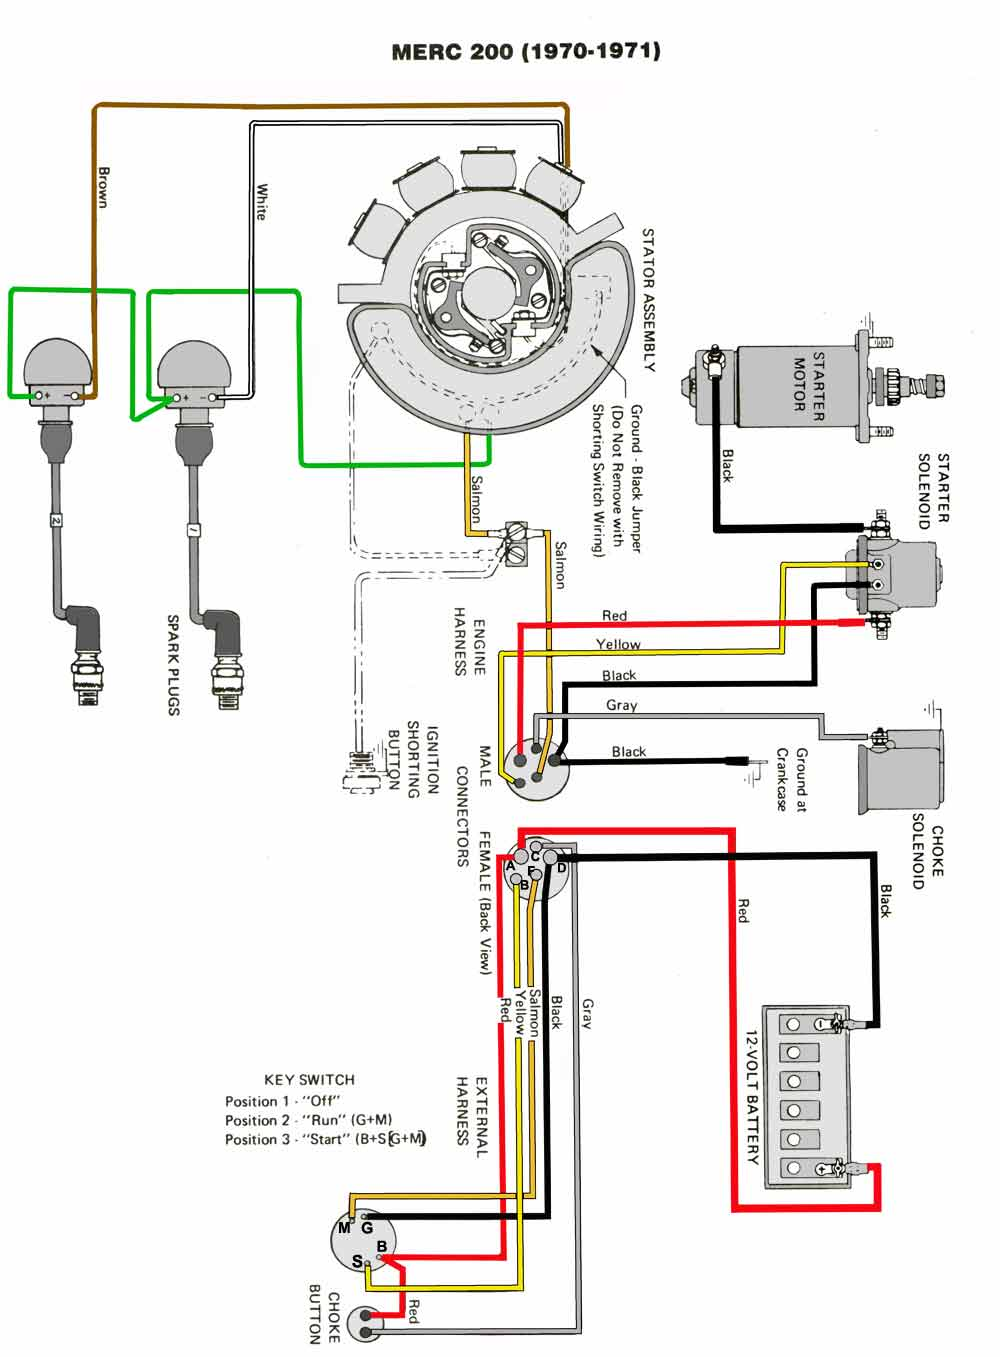 50 Hp Mercury Wiring Harness | Wiring Diagrams Mariner Wiring Diagram on friendship bracelet diagrams, sincgars radio configurations diagrams, honda motorcycle repair diagrams, electronic circuit diagrams, pinout diagrams, switch diagrams, troubleshooting diagrams, internet of things diagrams, engine diagrams, led circuit diagrams, hvac diagrams, lighting diagrams, gmc fuse box diagrams, series and parallel circuits diagrams, electrical diagrams, battery diagrams, smart car diagrams, motor diagrams, transformer diagrams,